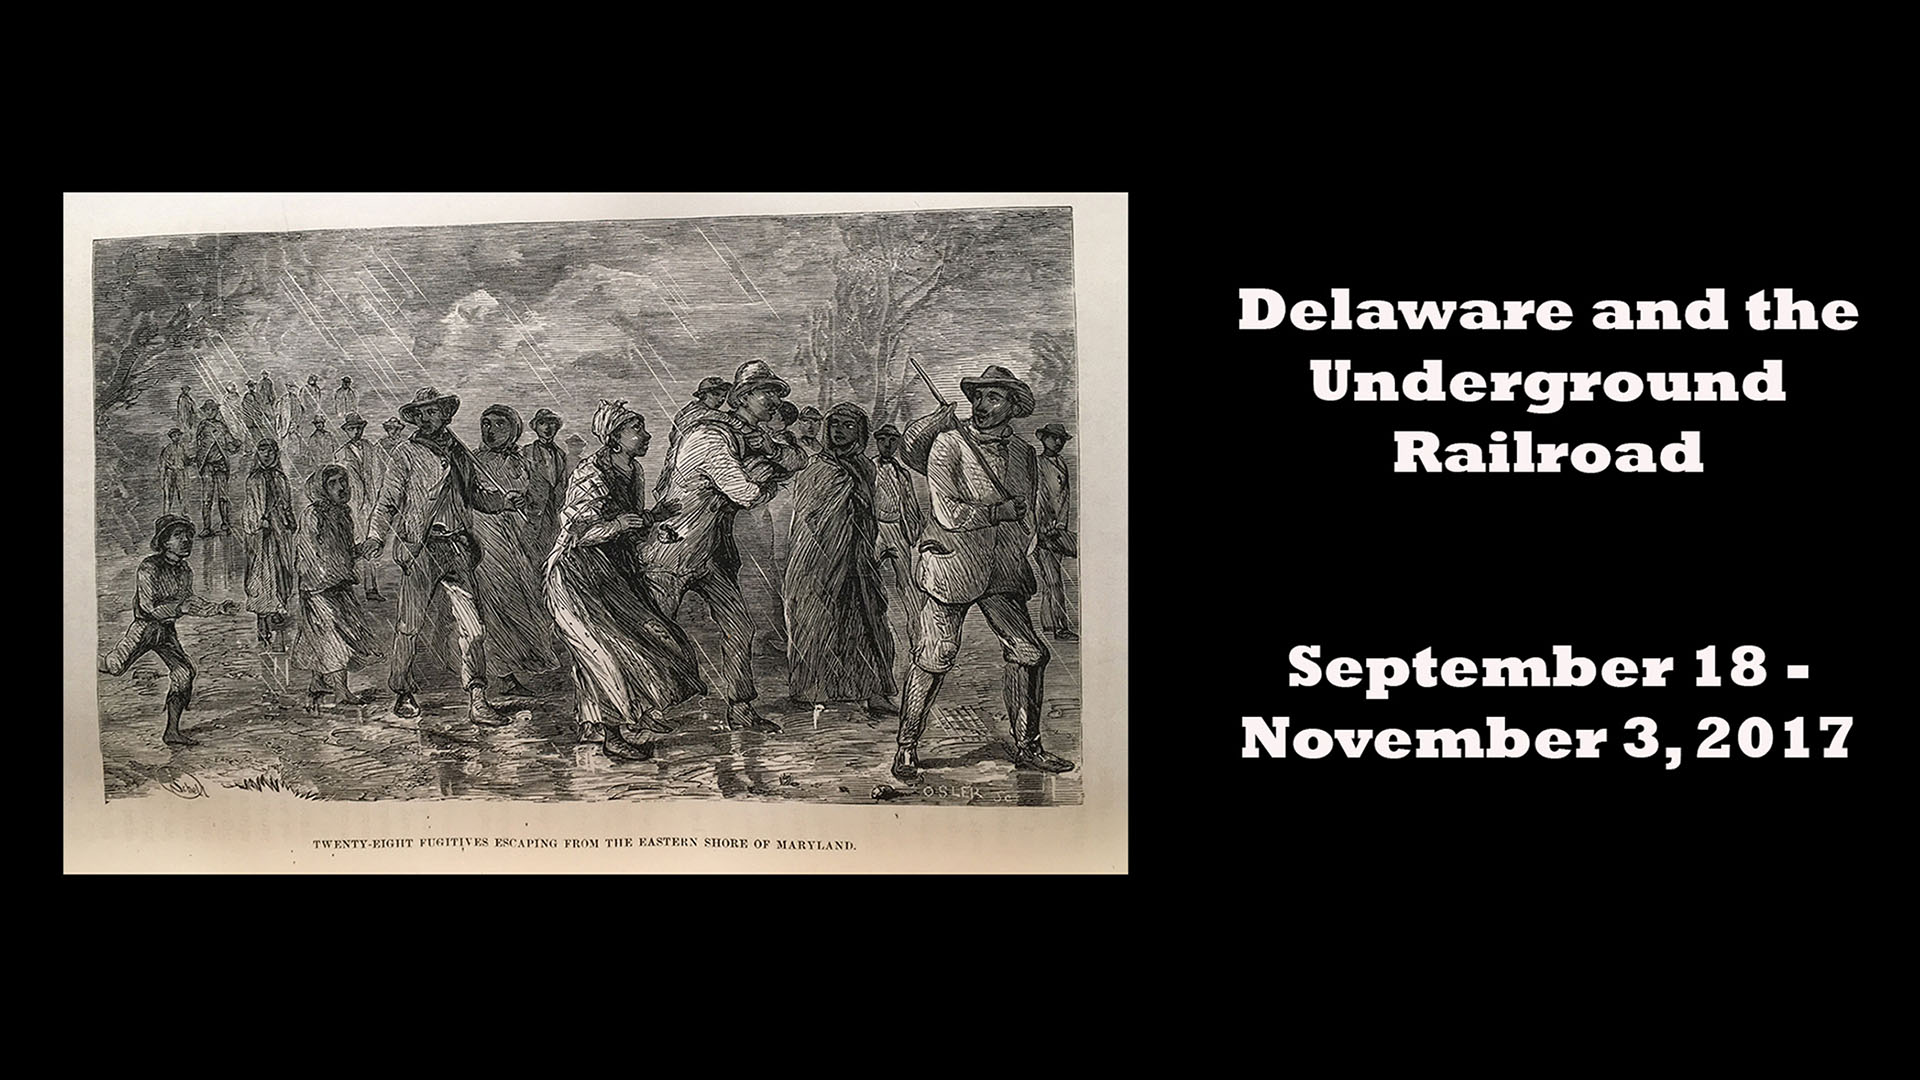 Delaware and the Underground Railroad